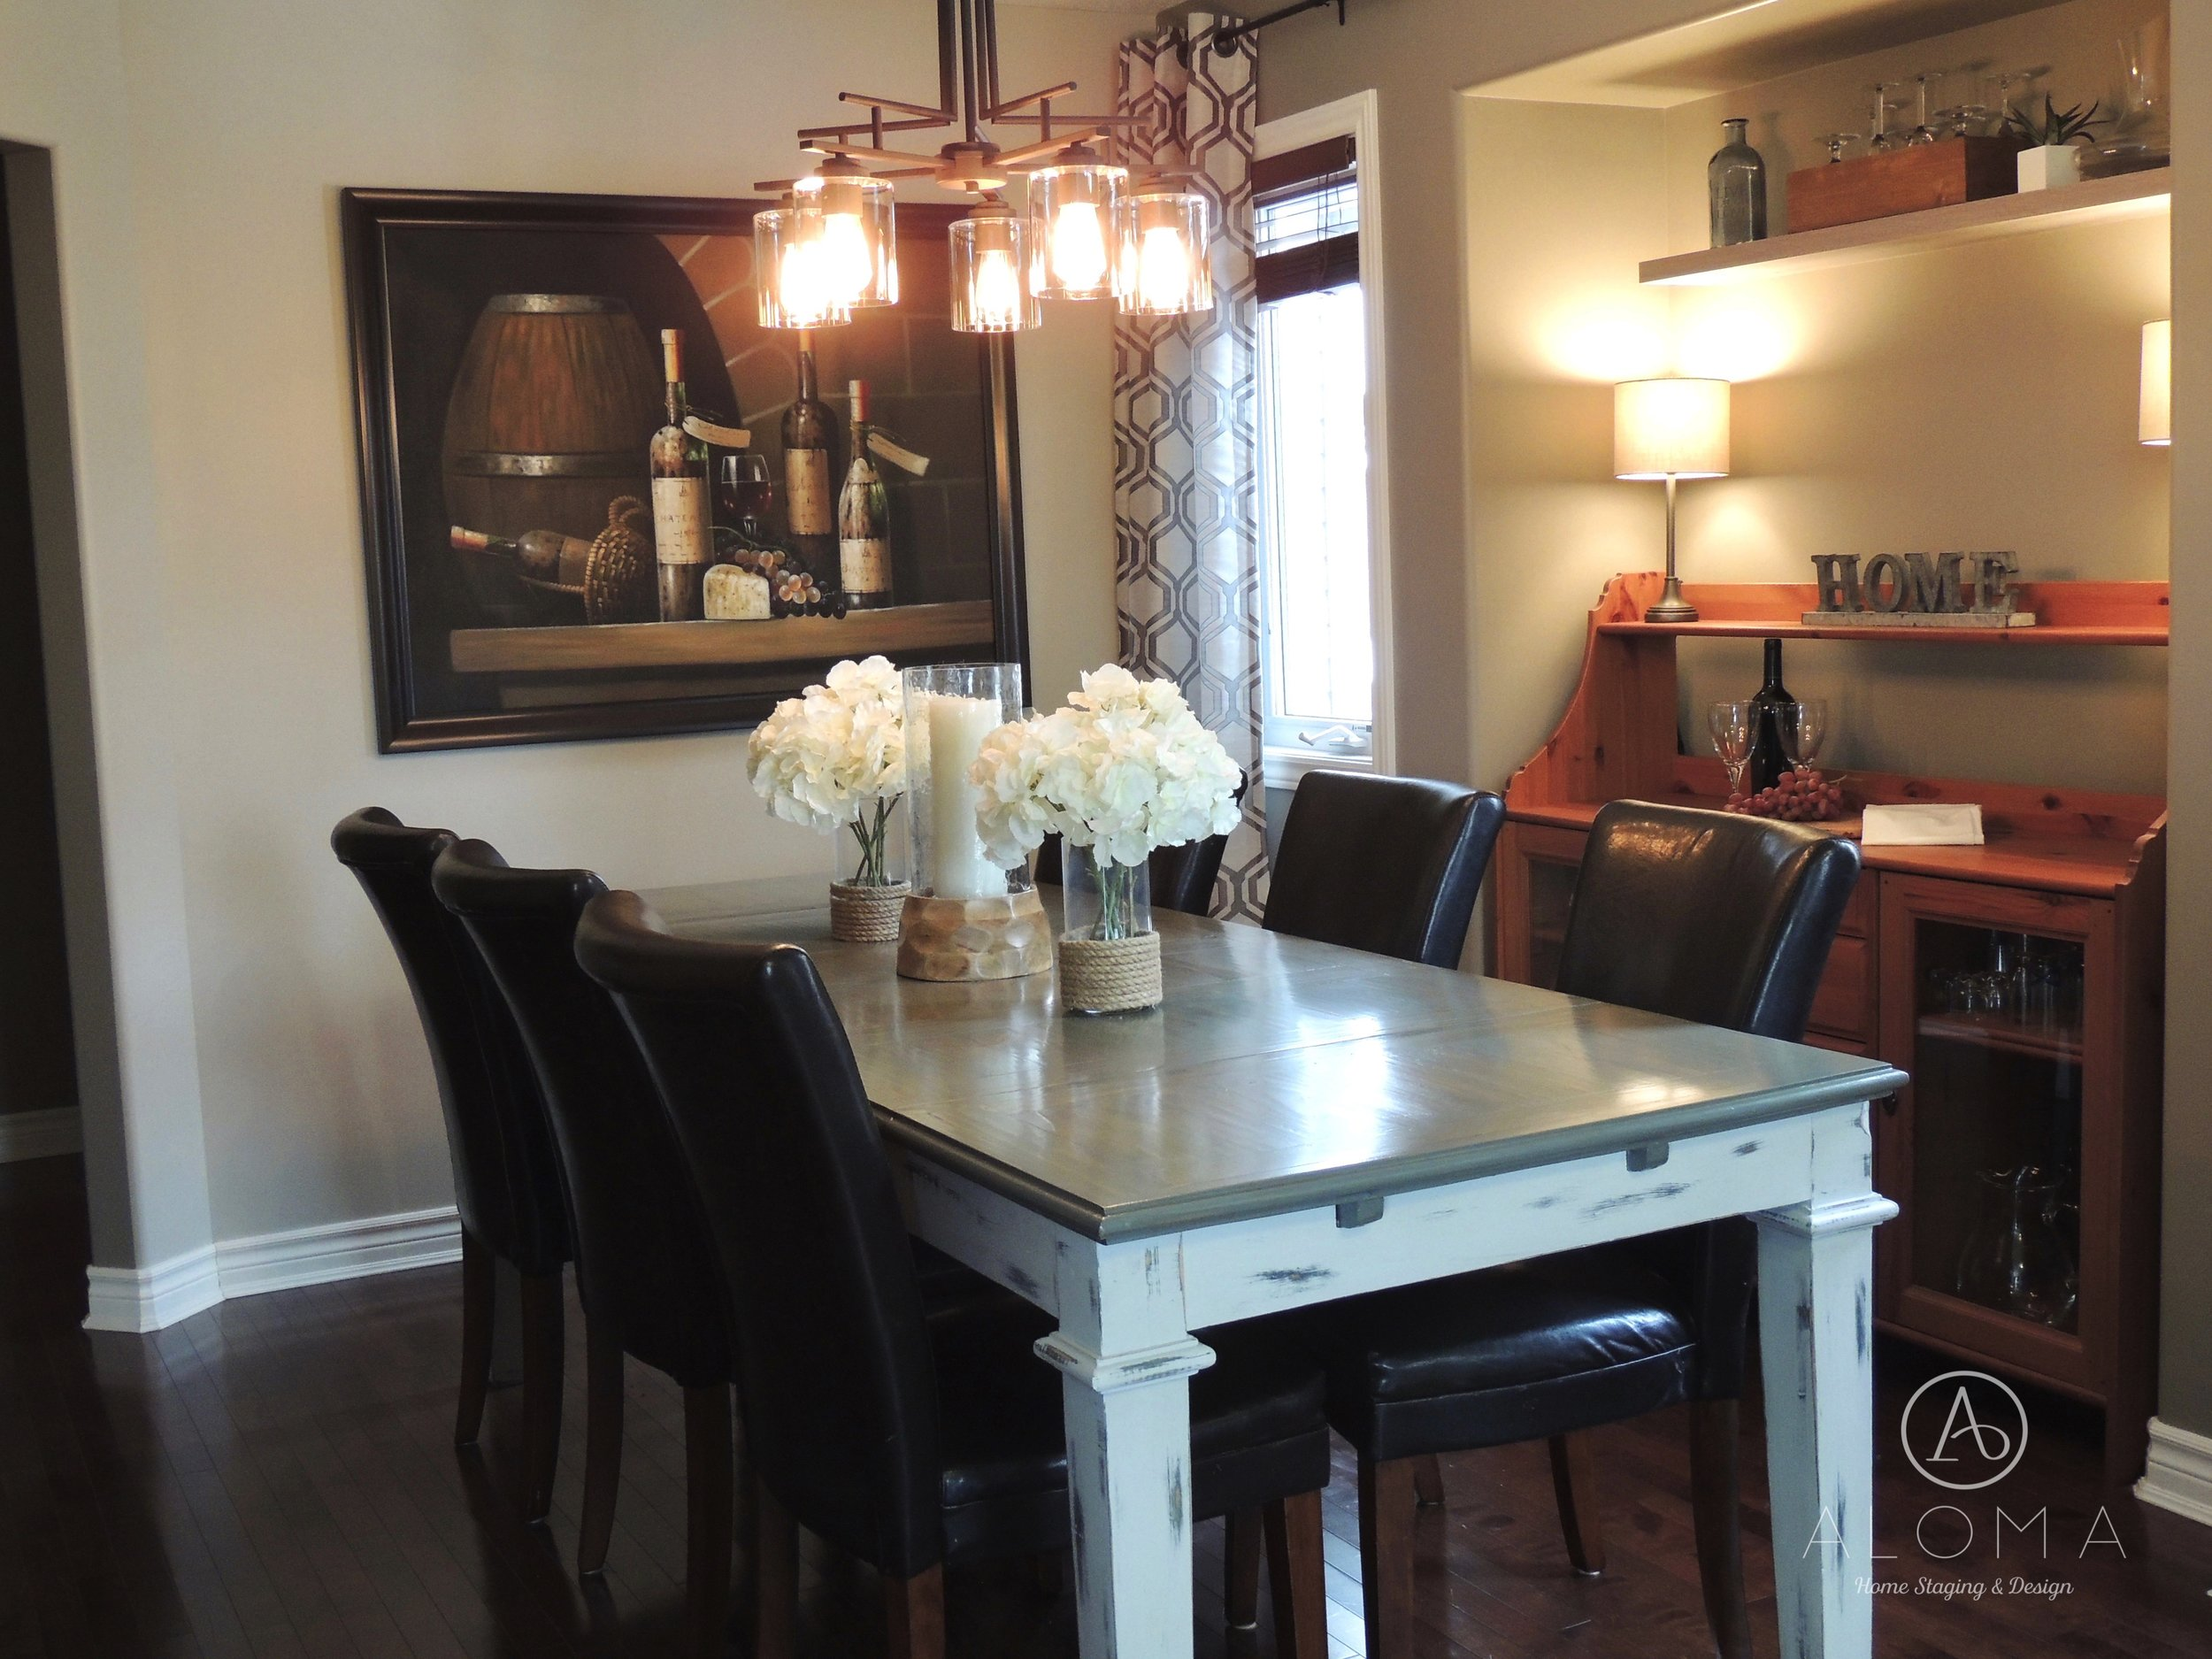 After-Dining Room- ALOMA Home Staging & Design